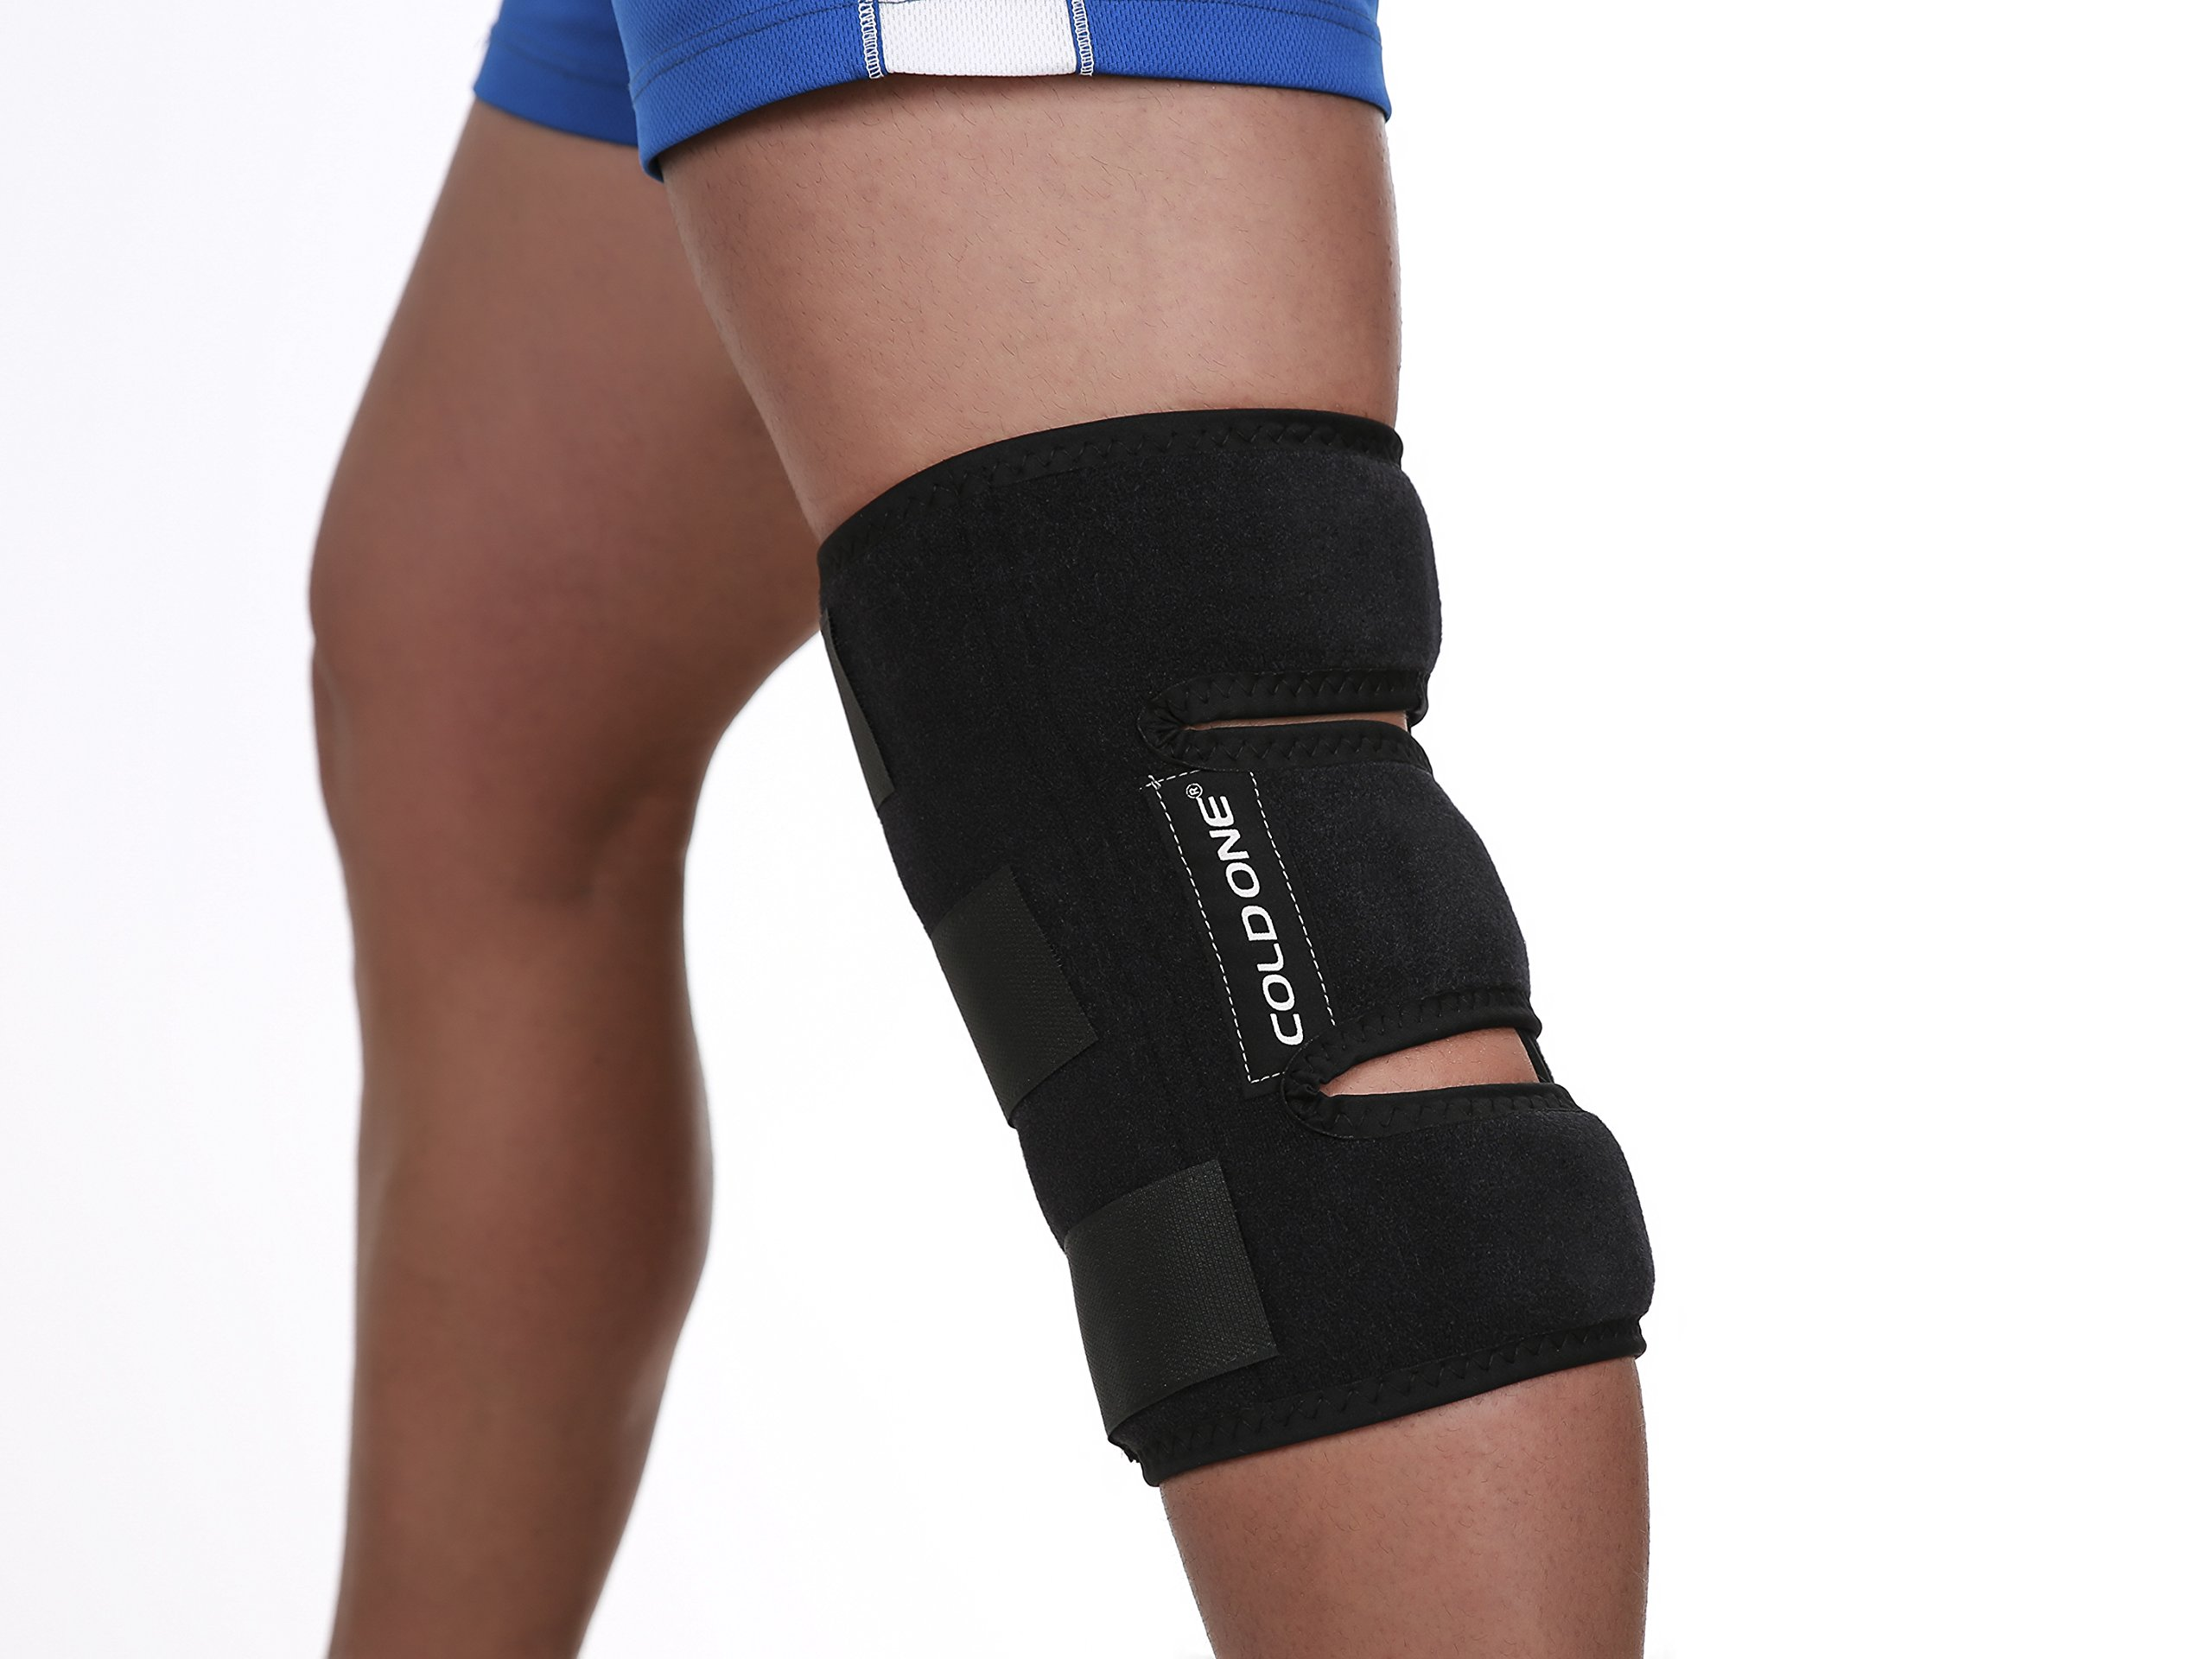 Knee Soft Brace Ice Pack + Compression Cold Therapy 360º knee Ice Wrap, 15-20 min of 32 deg f Knee Icing Recommended by Ortho MDs Safe and Effective. Universal Size. Clinical Quality. USA. by Cold One